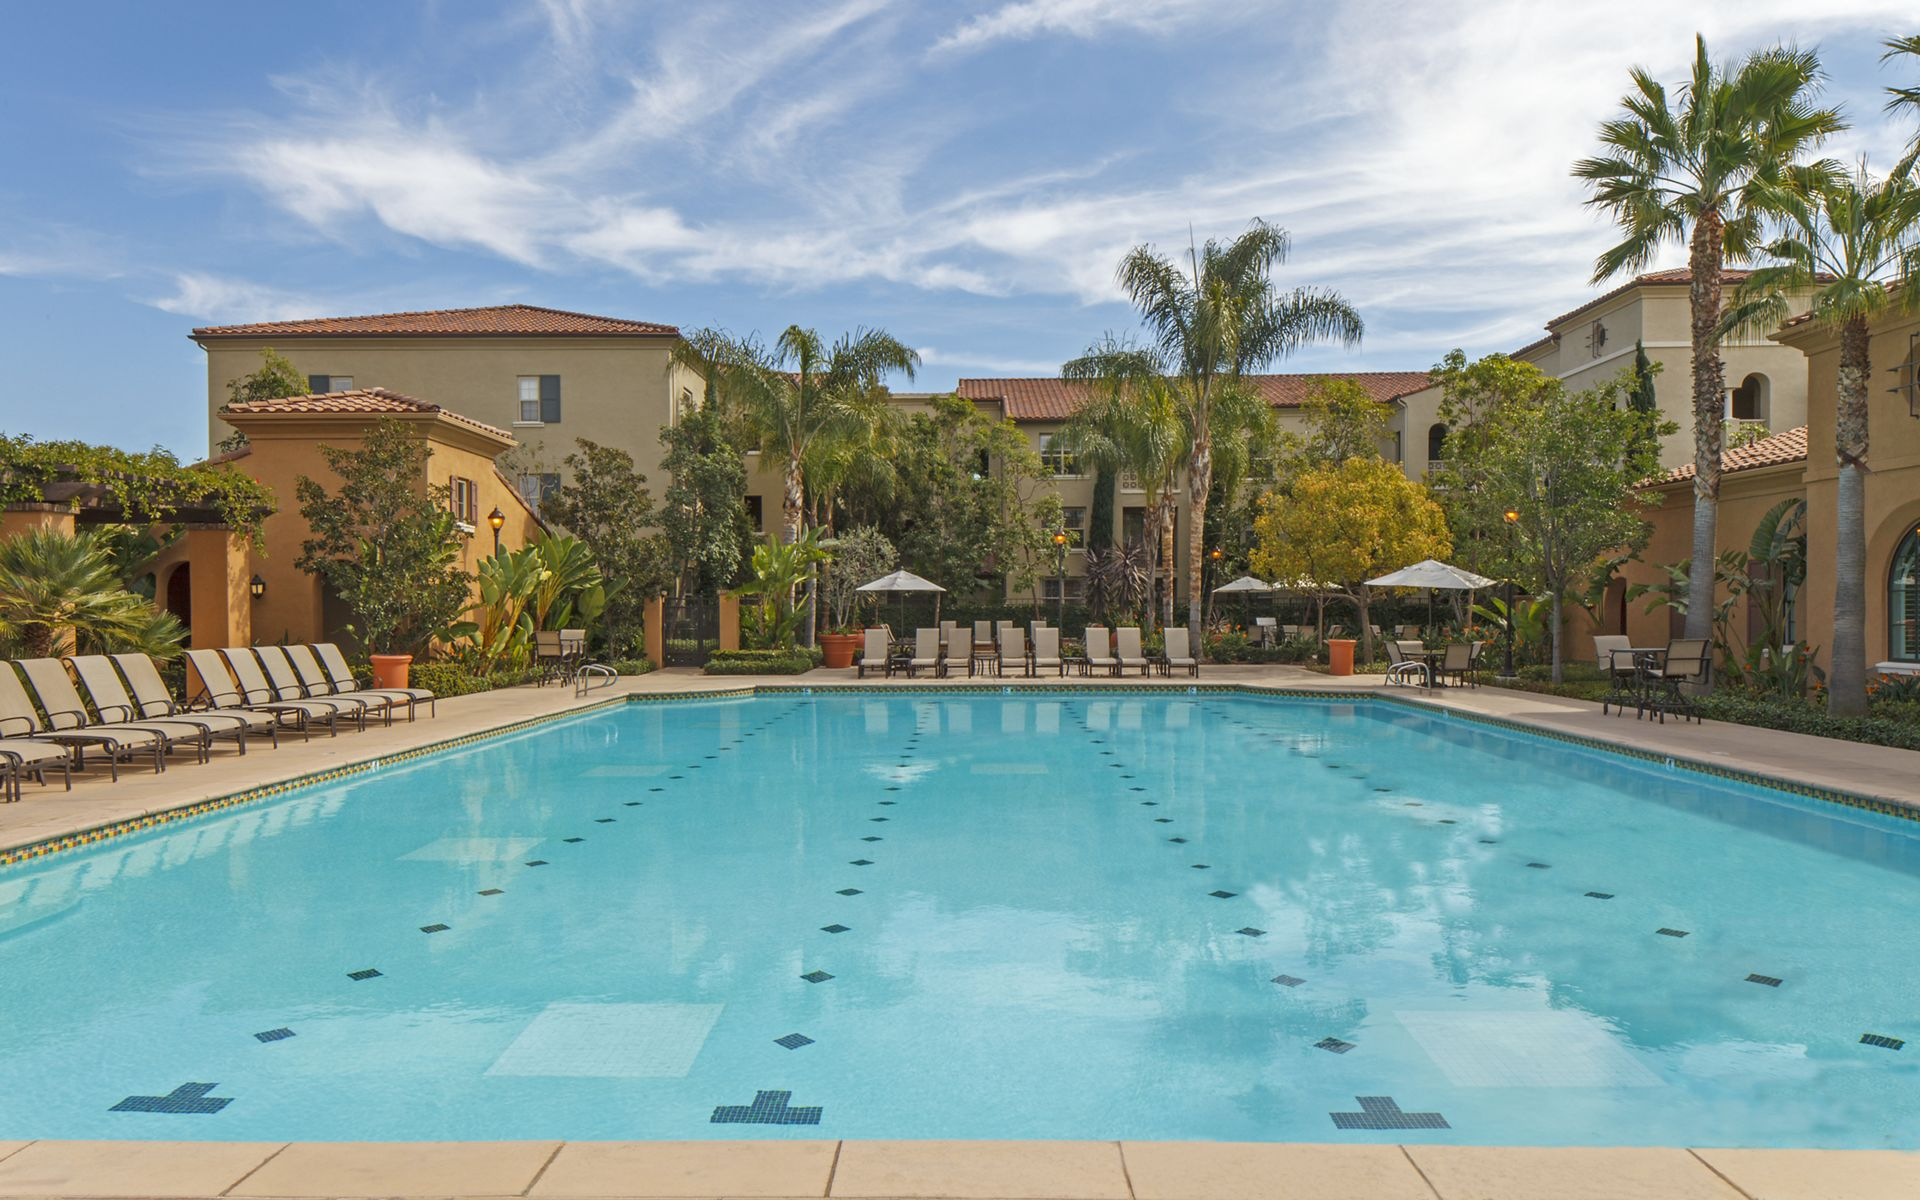 Exterior view of pool at Woodbury Square Apartment Homes in Irvine, CA.